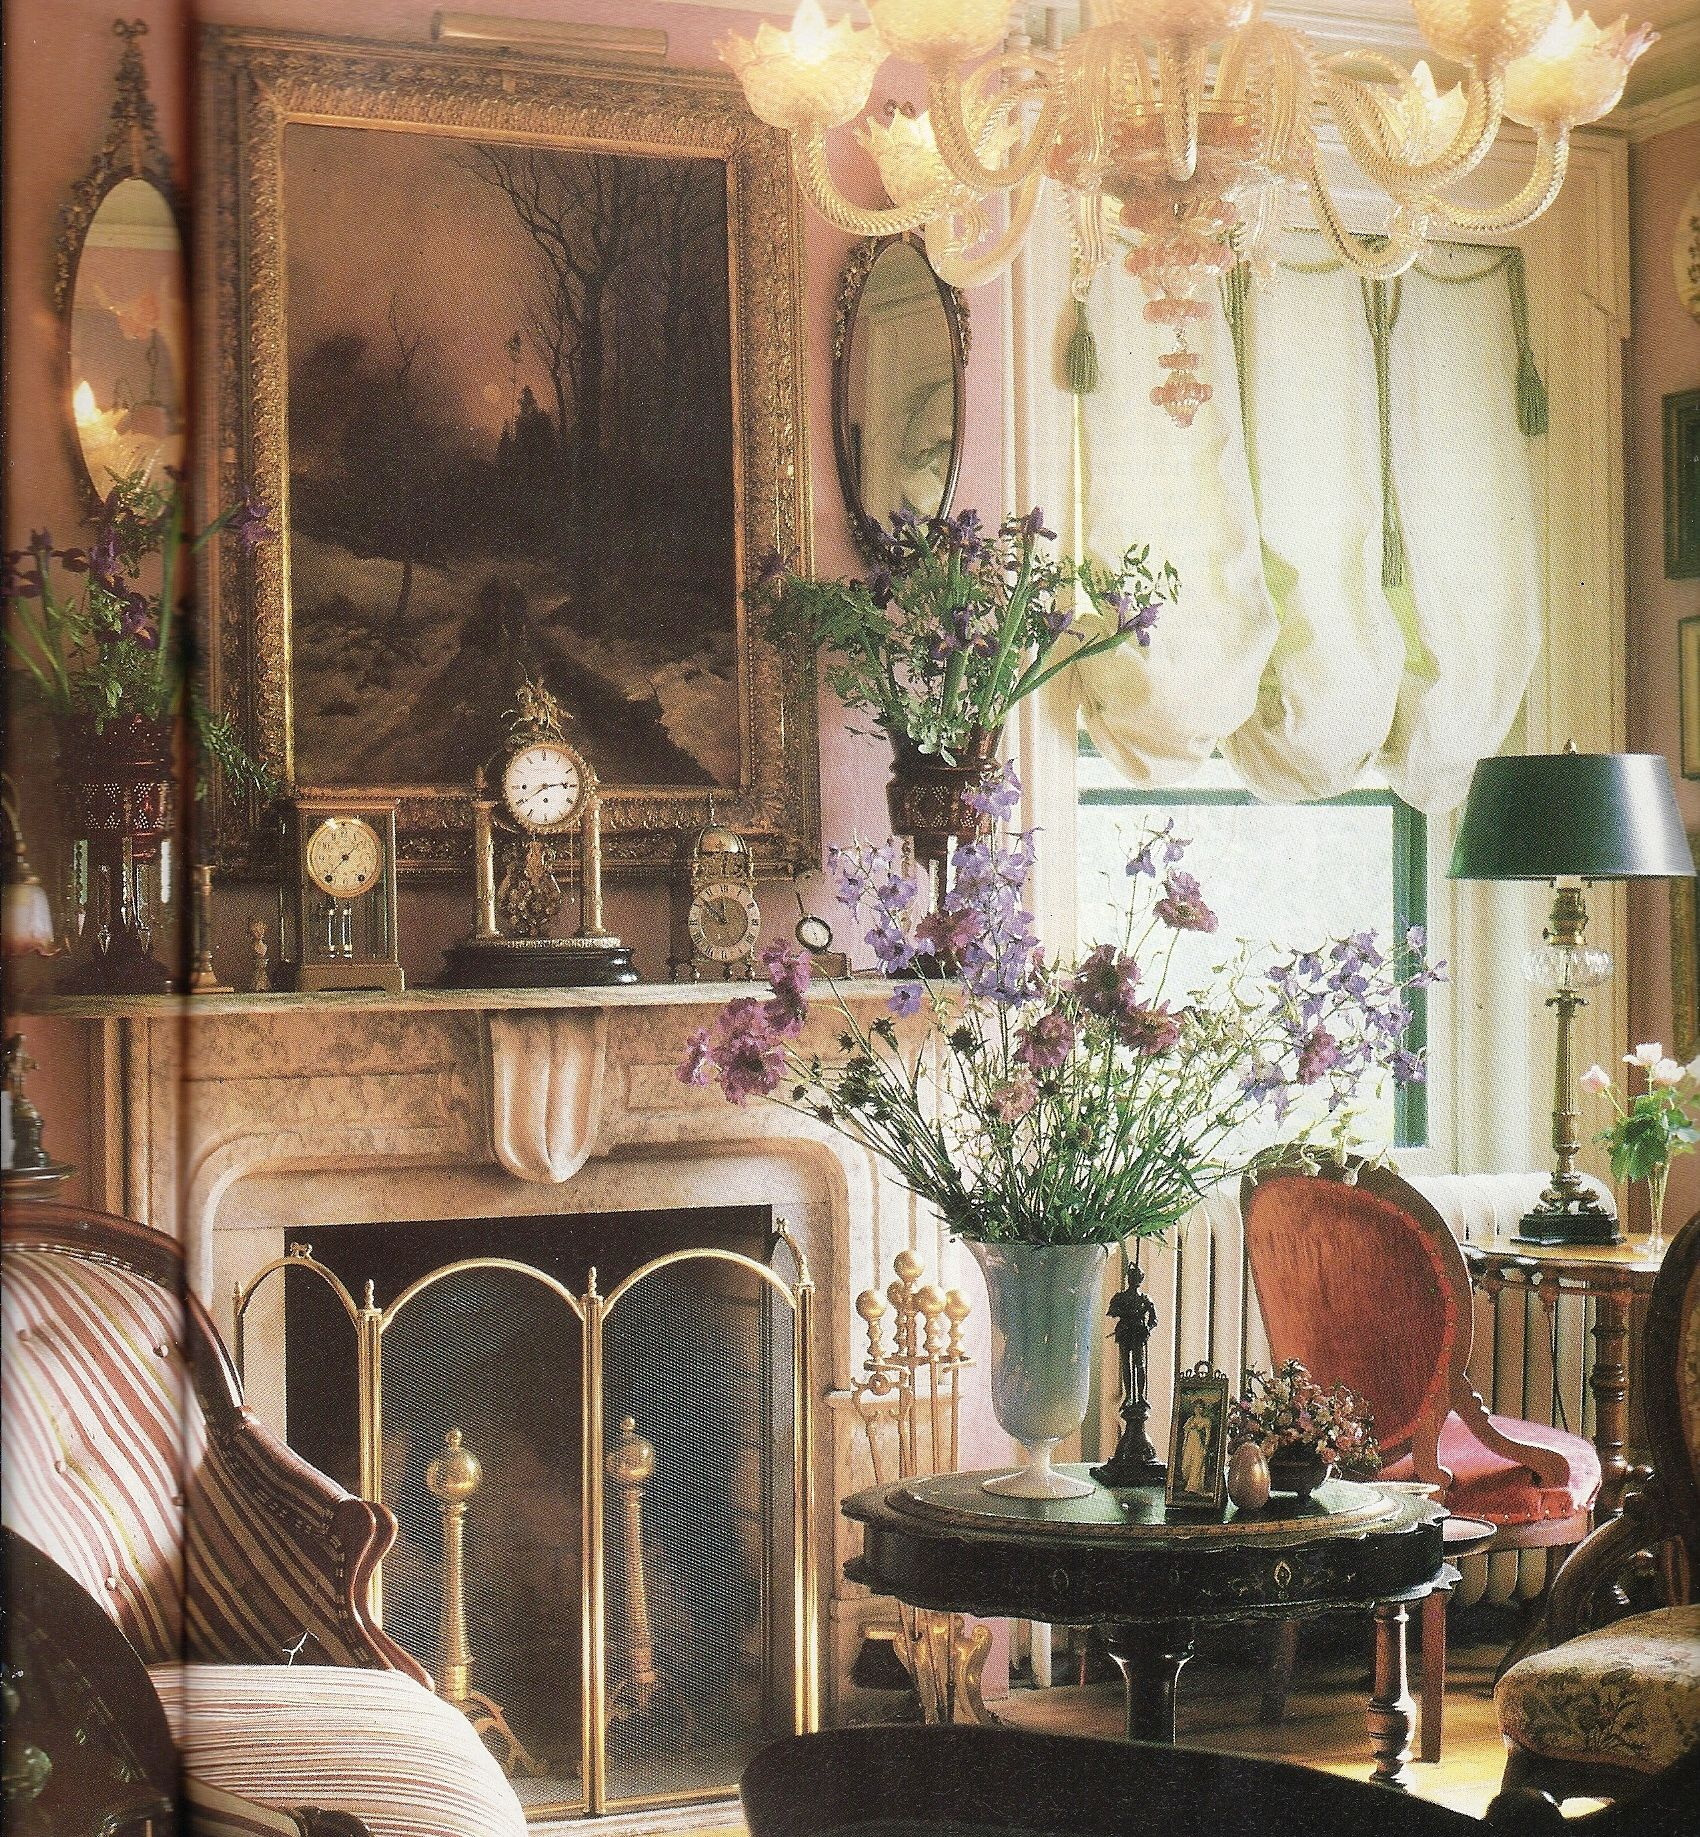 Victorian Decor Magnificent Of lovely Victorian decor | Victorian Interiors | Pinterest Image